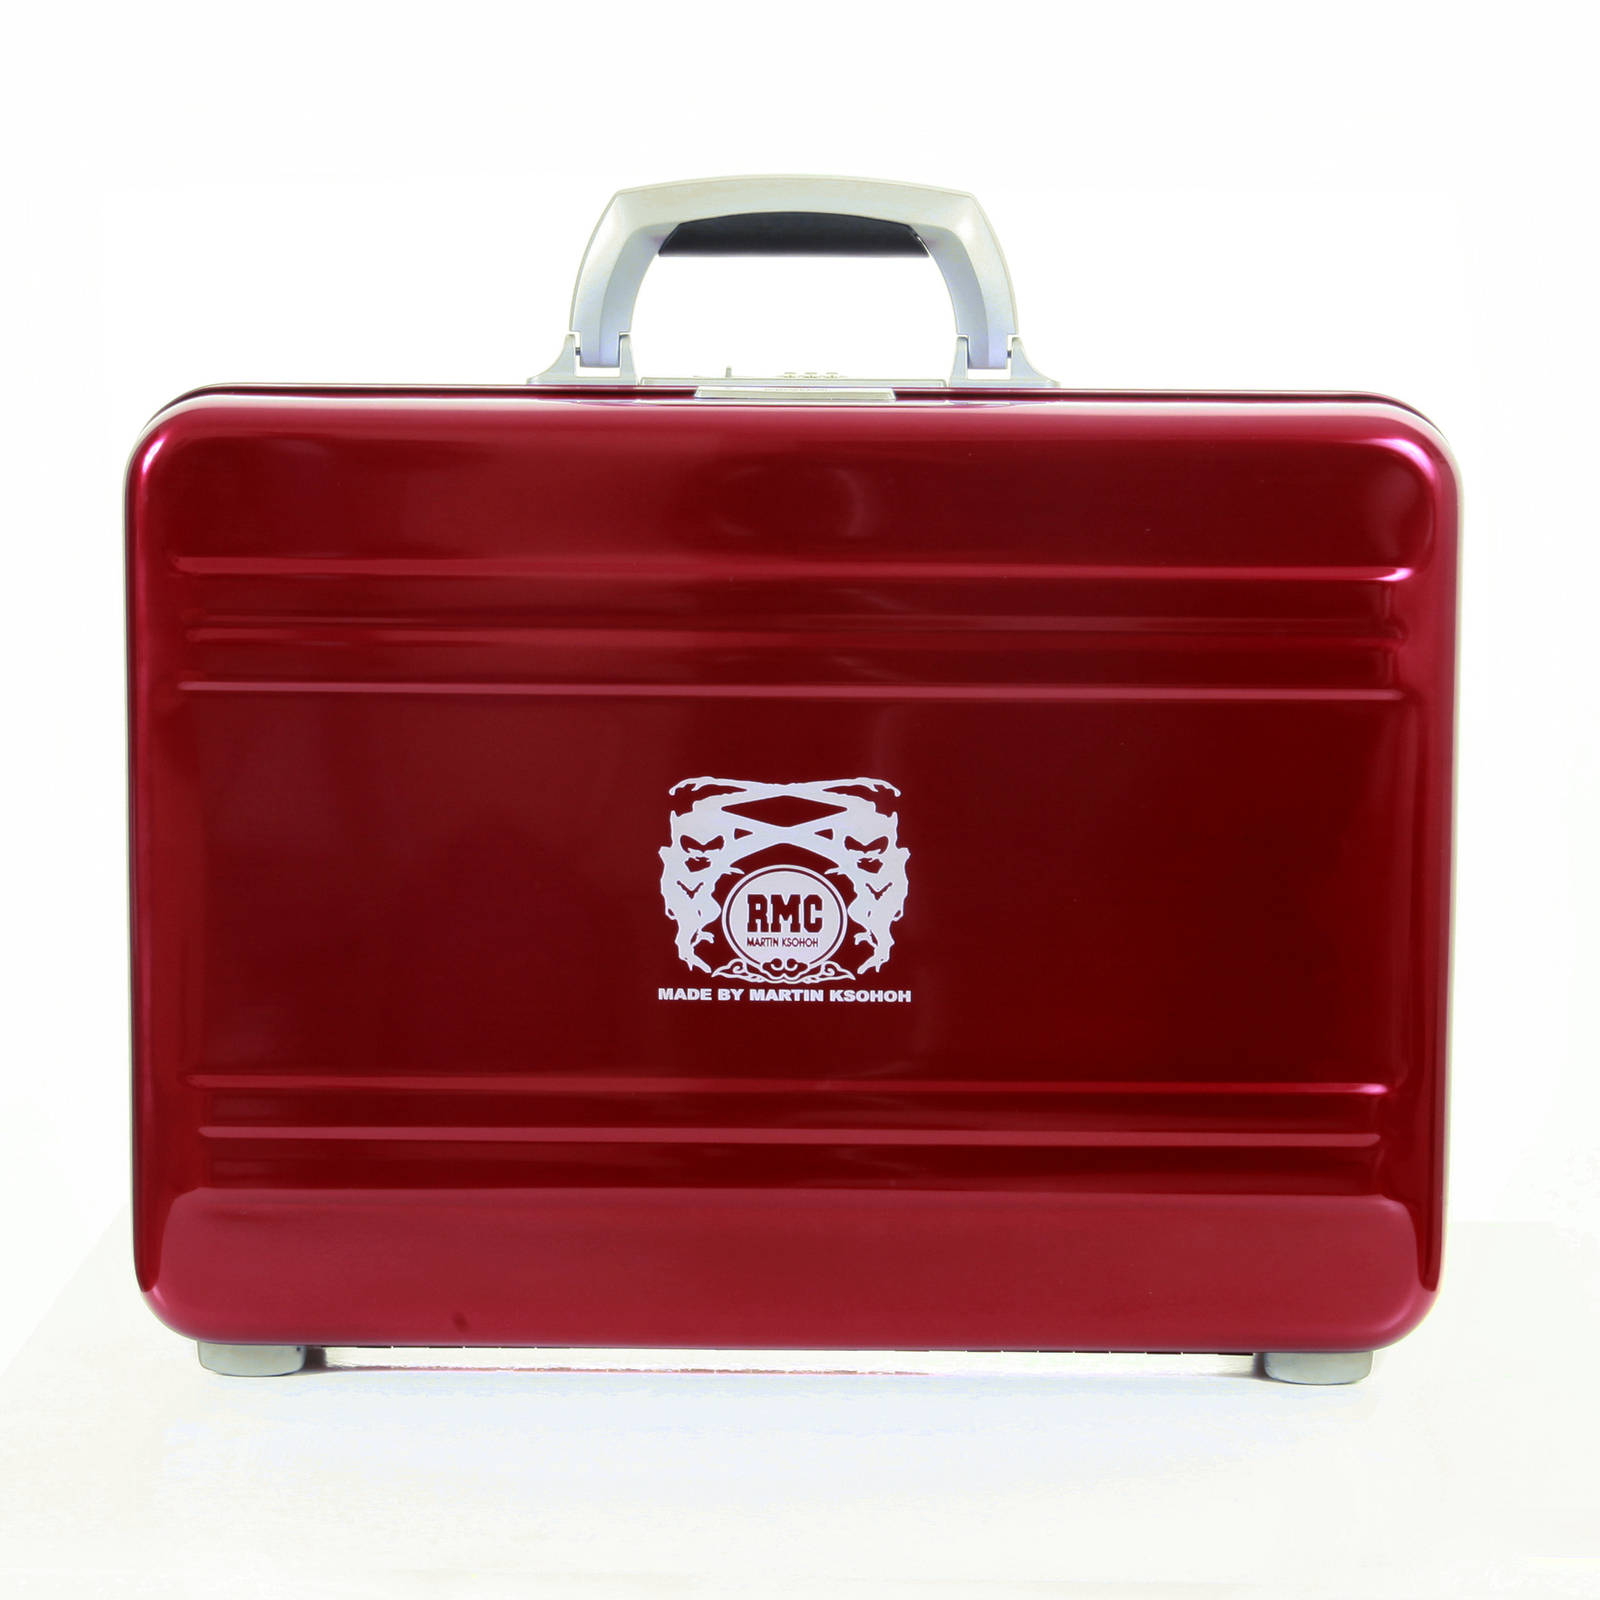 Shop For Rmc Aluminium Limited Edition Red Briefcase